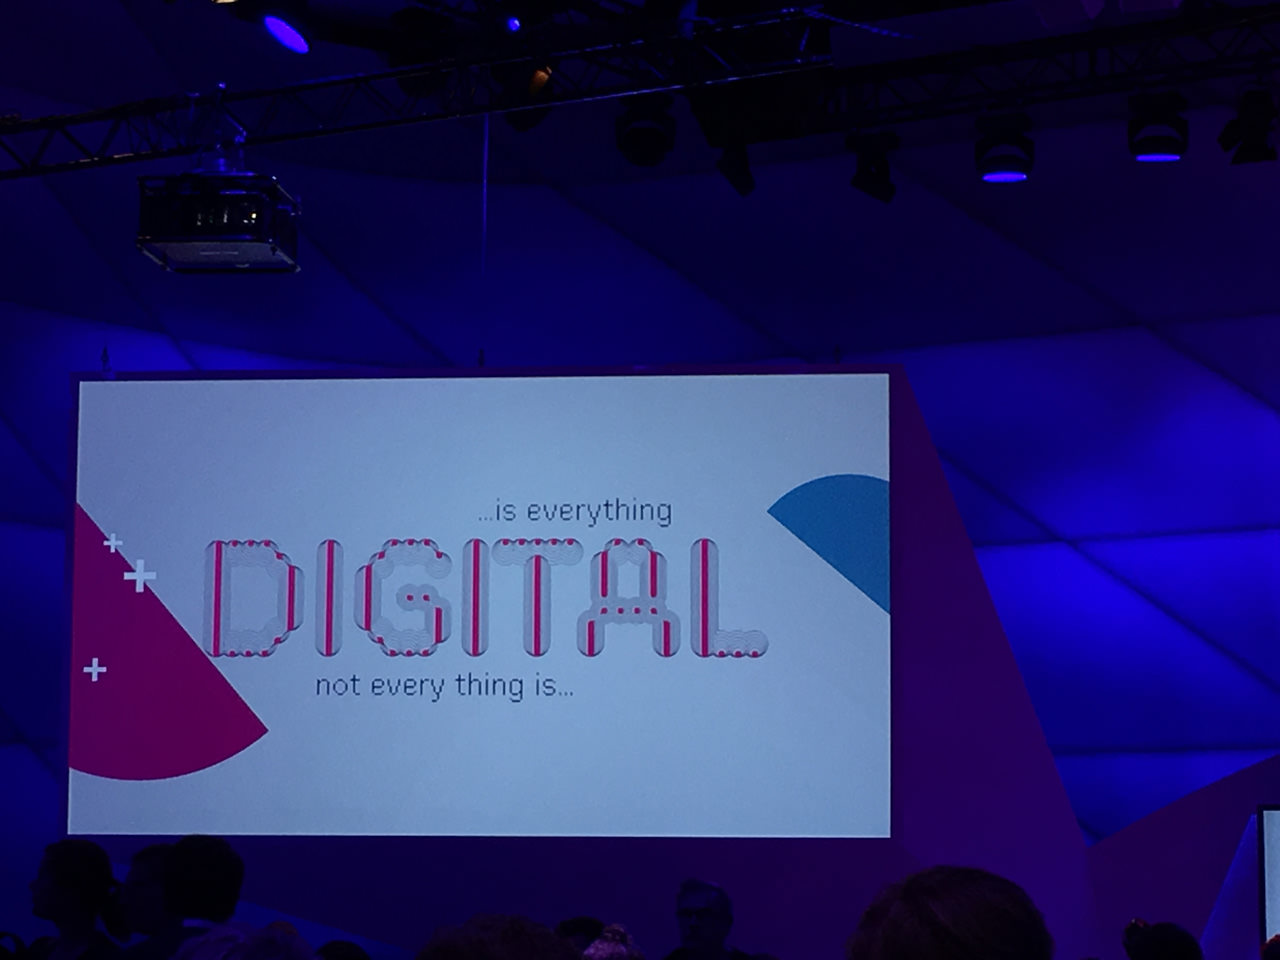 Werbeslogan bei dmxco not everything is digital is everything